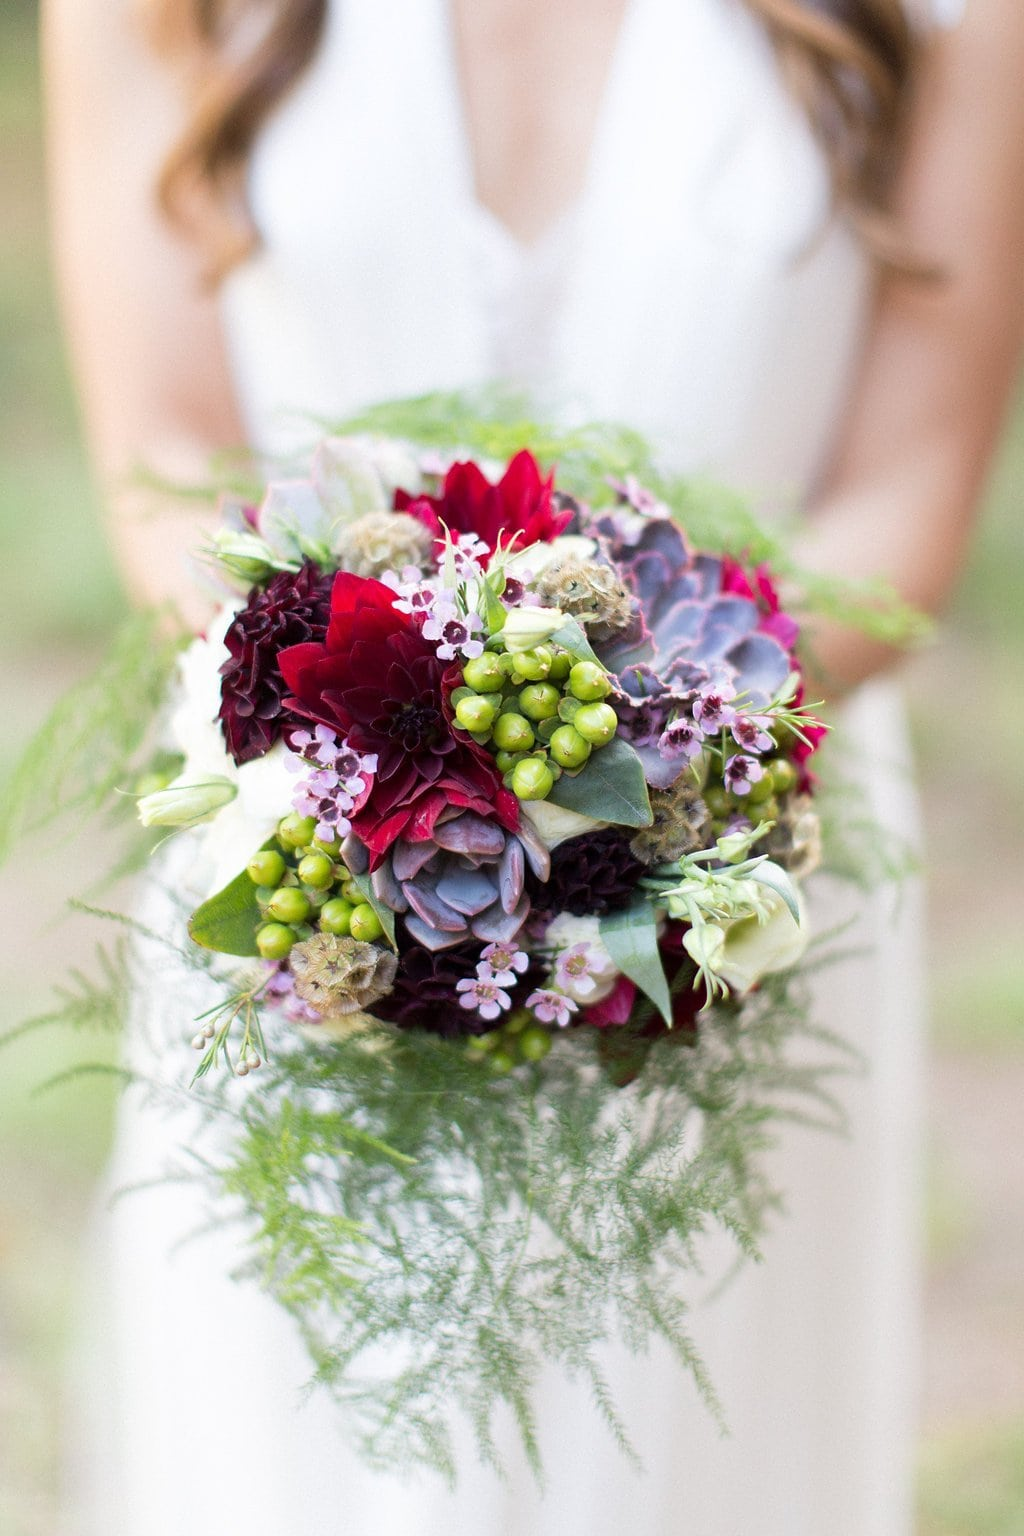 Bride holding purple, red, and burgundy colors bouquet